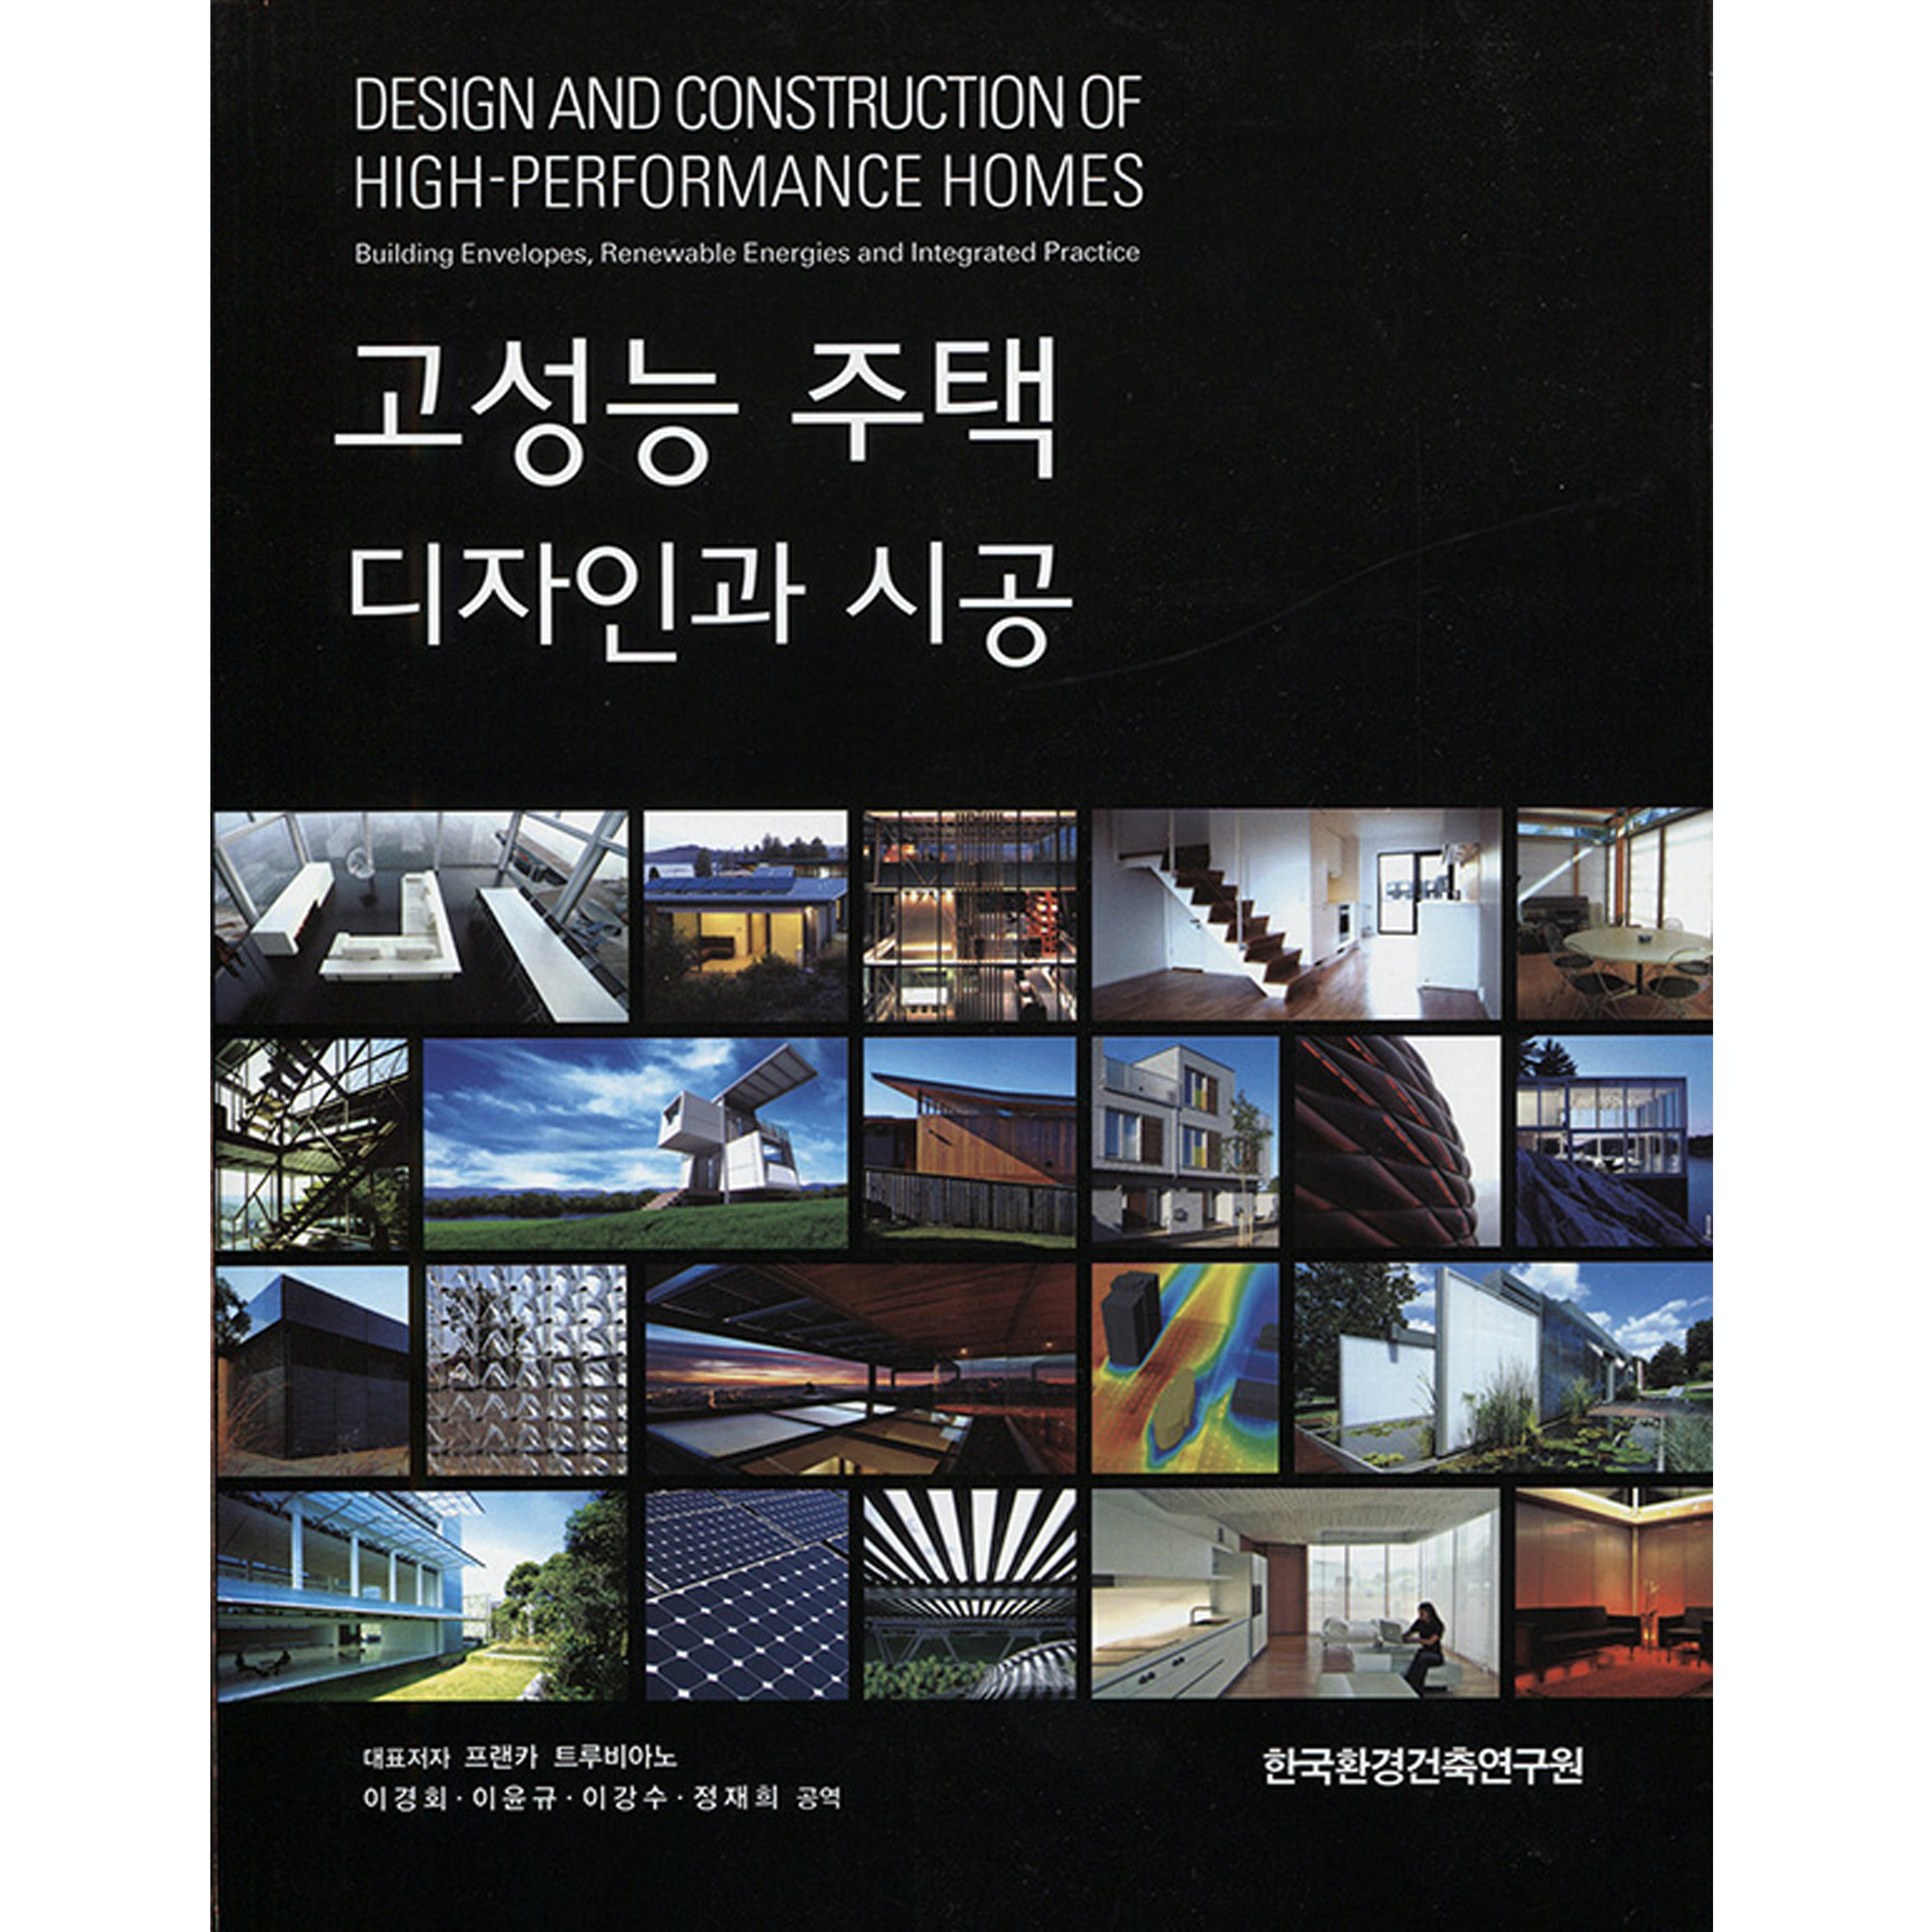 Rvtr korean translation design construction